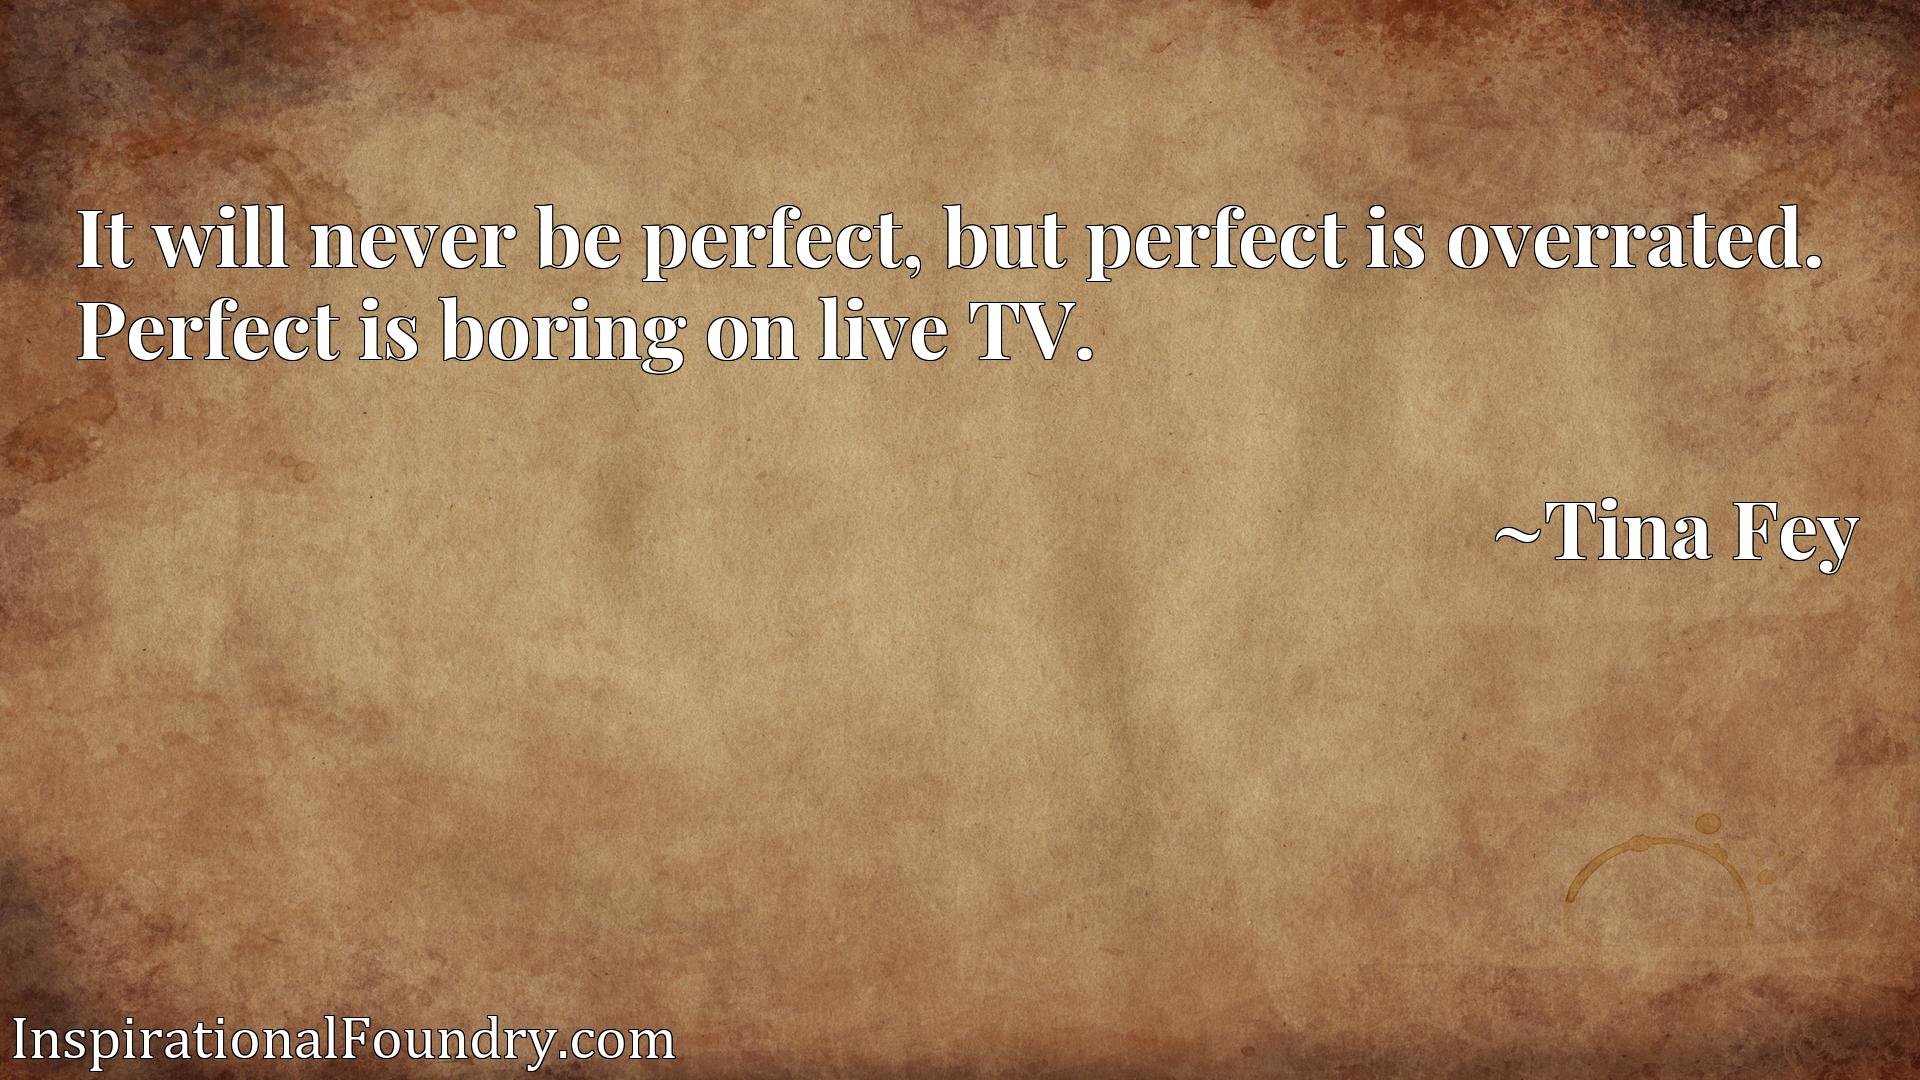 It will never be perfect, but perfect is overrated. Perfect is boring on live TV.